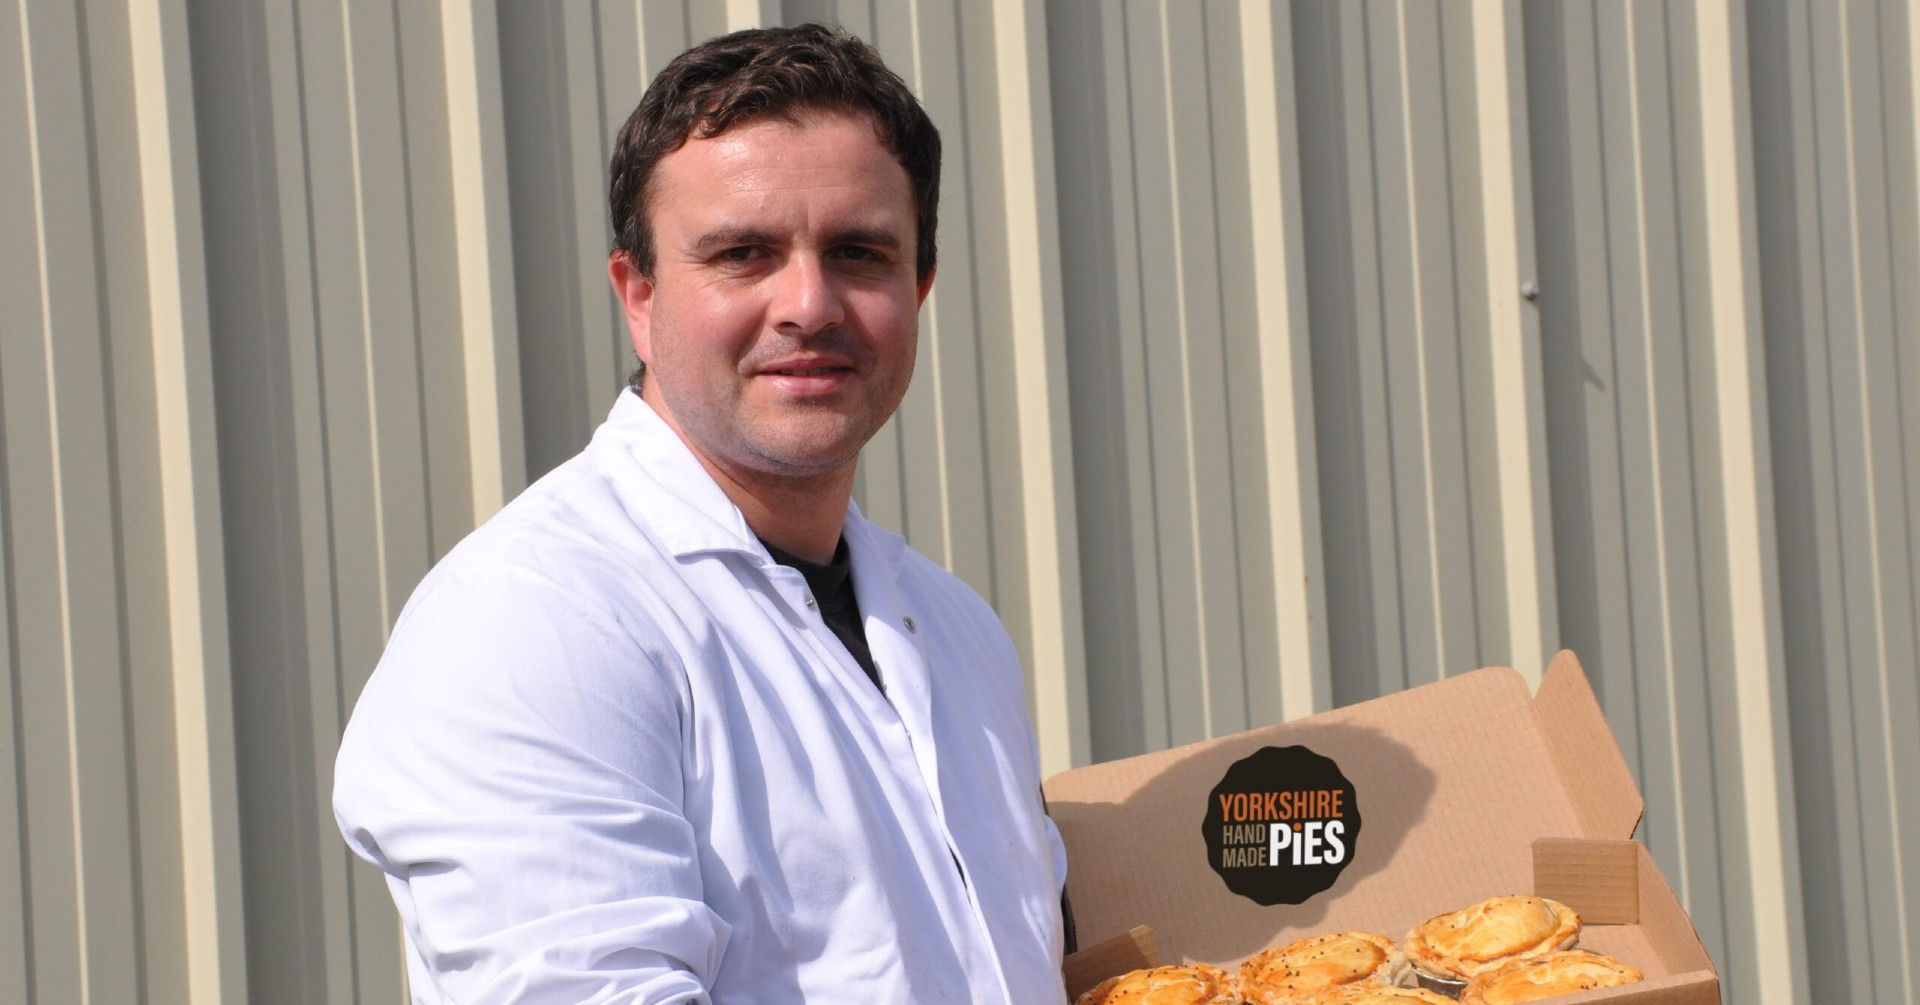 Ripon pie company lends its weight to food charity